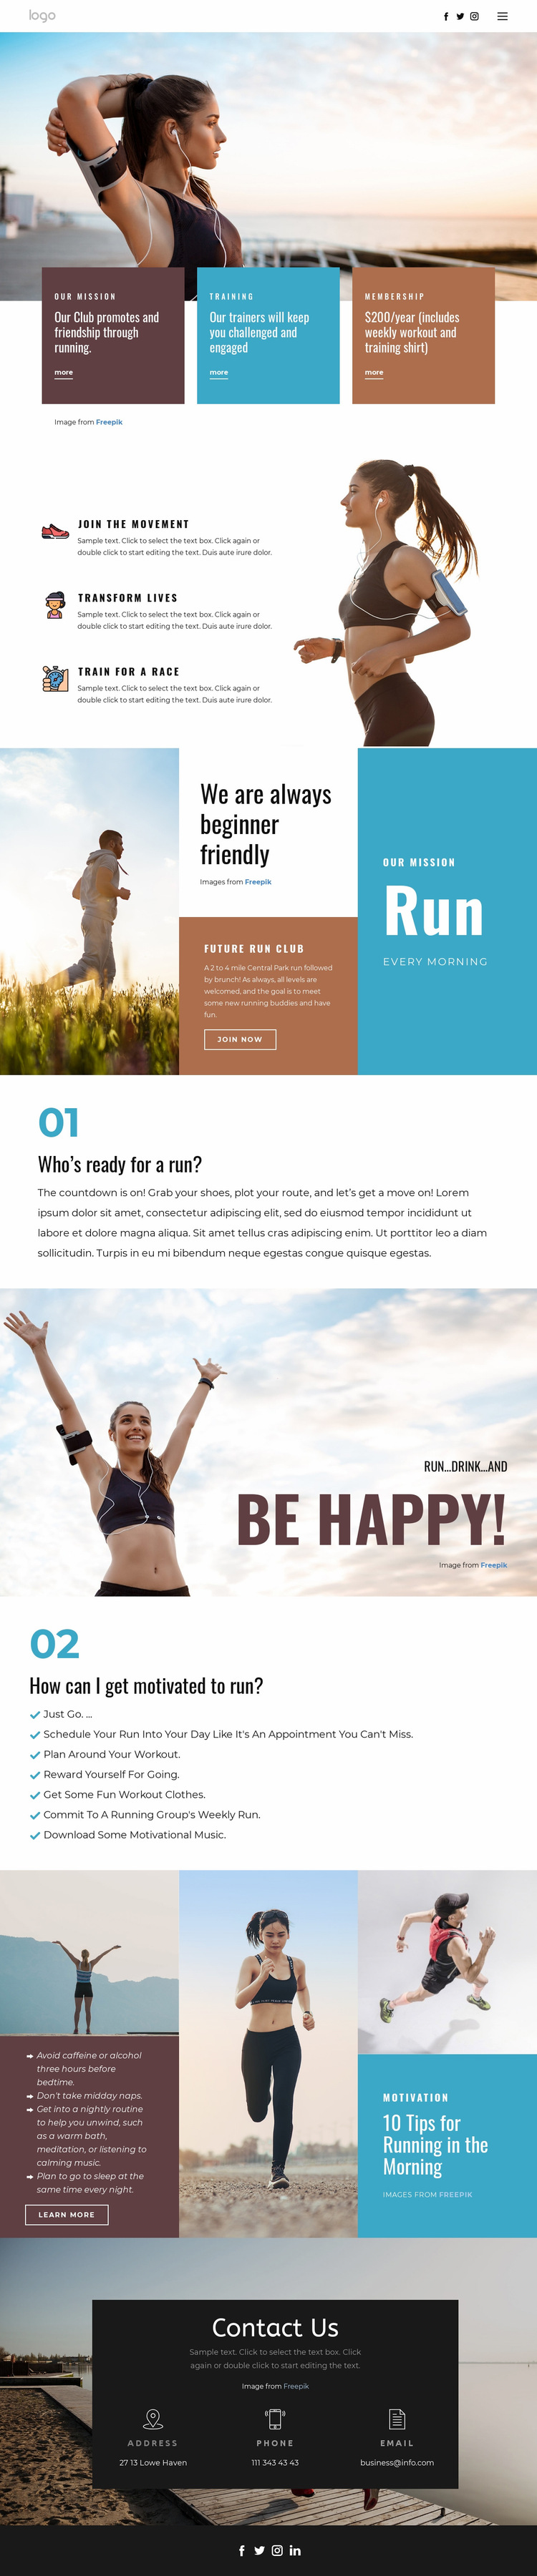 Running club for sports Web Page Design